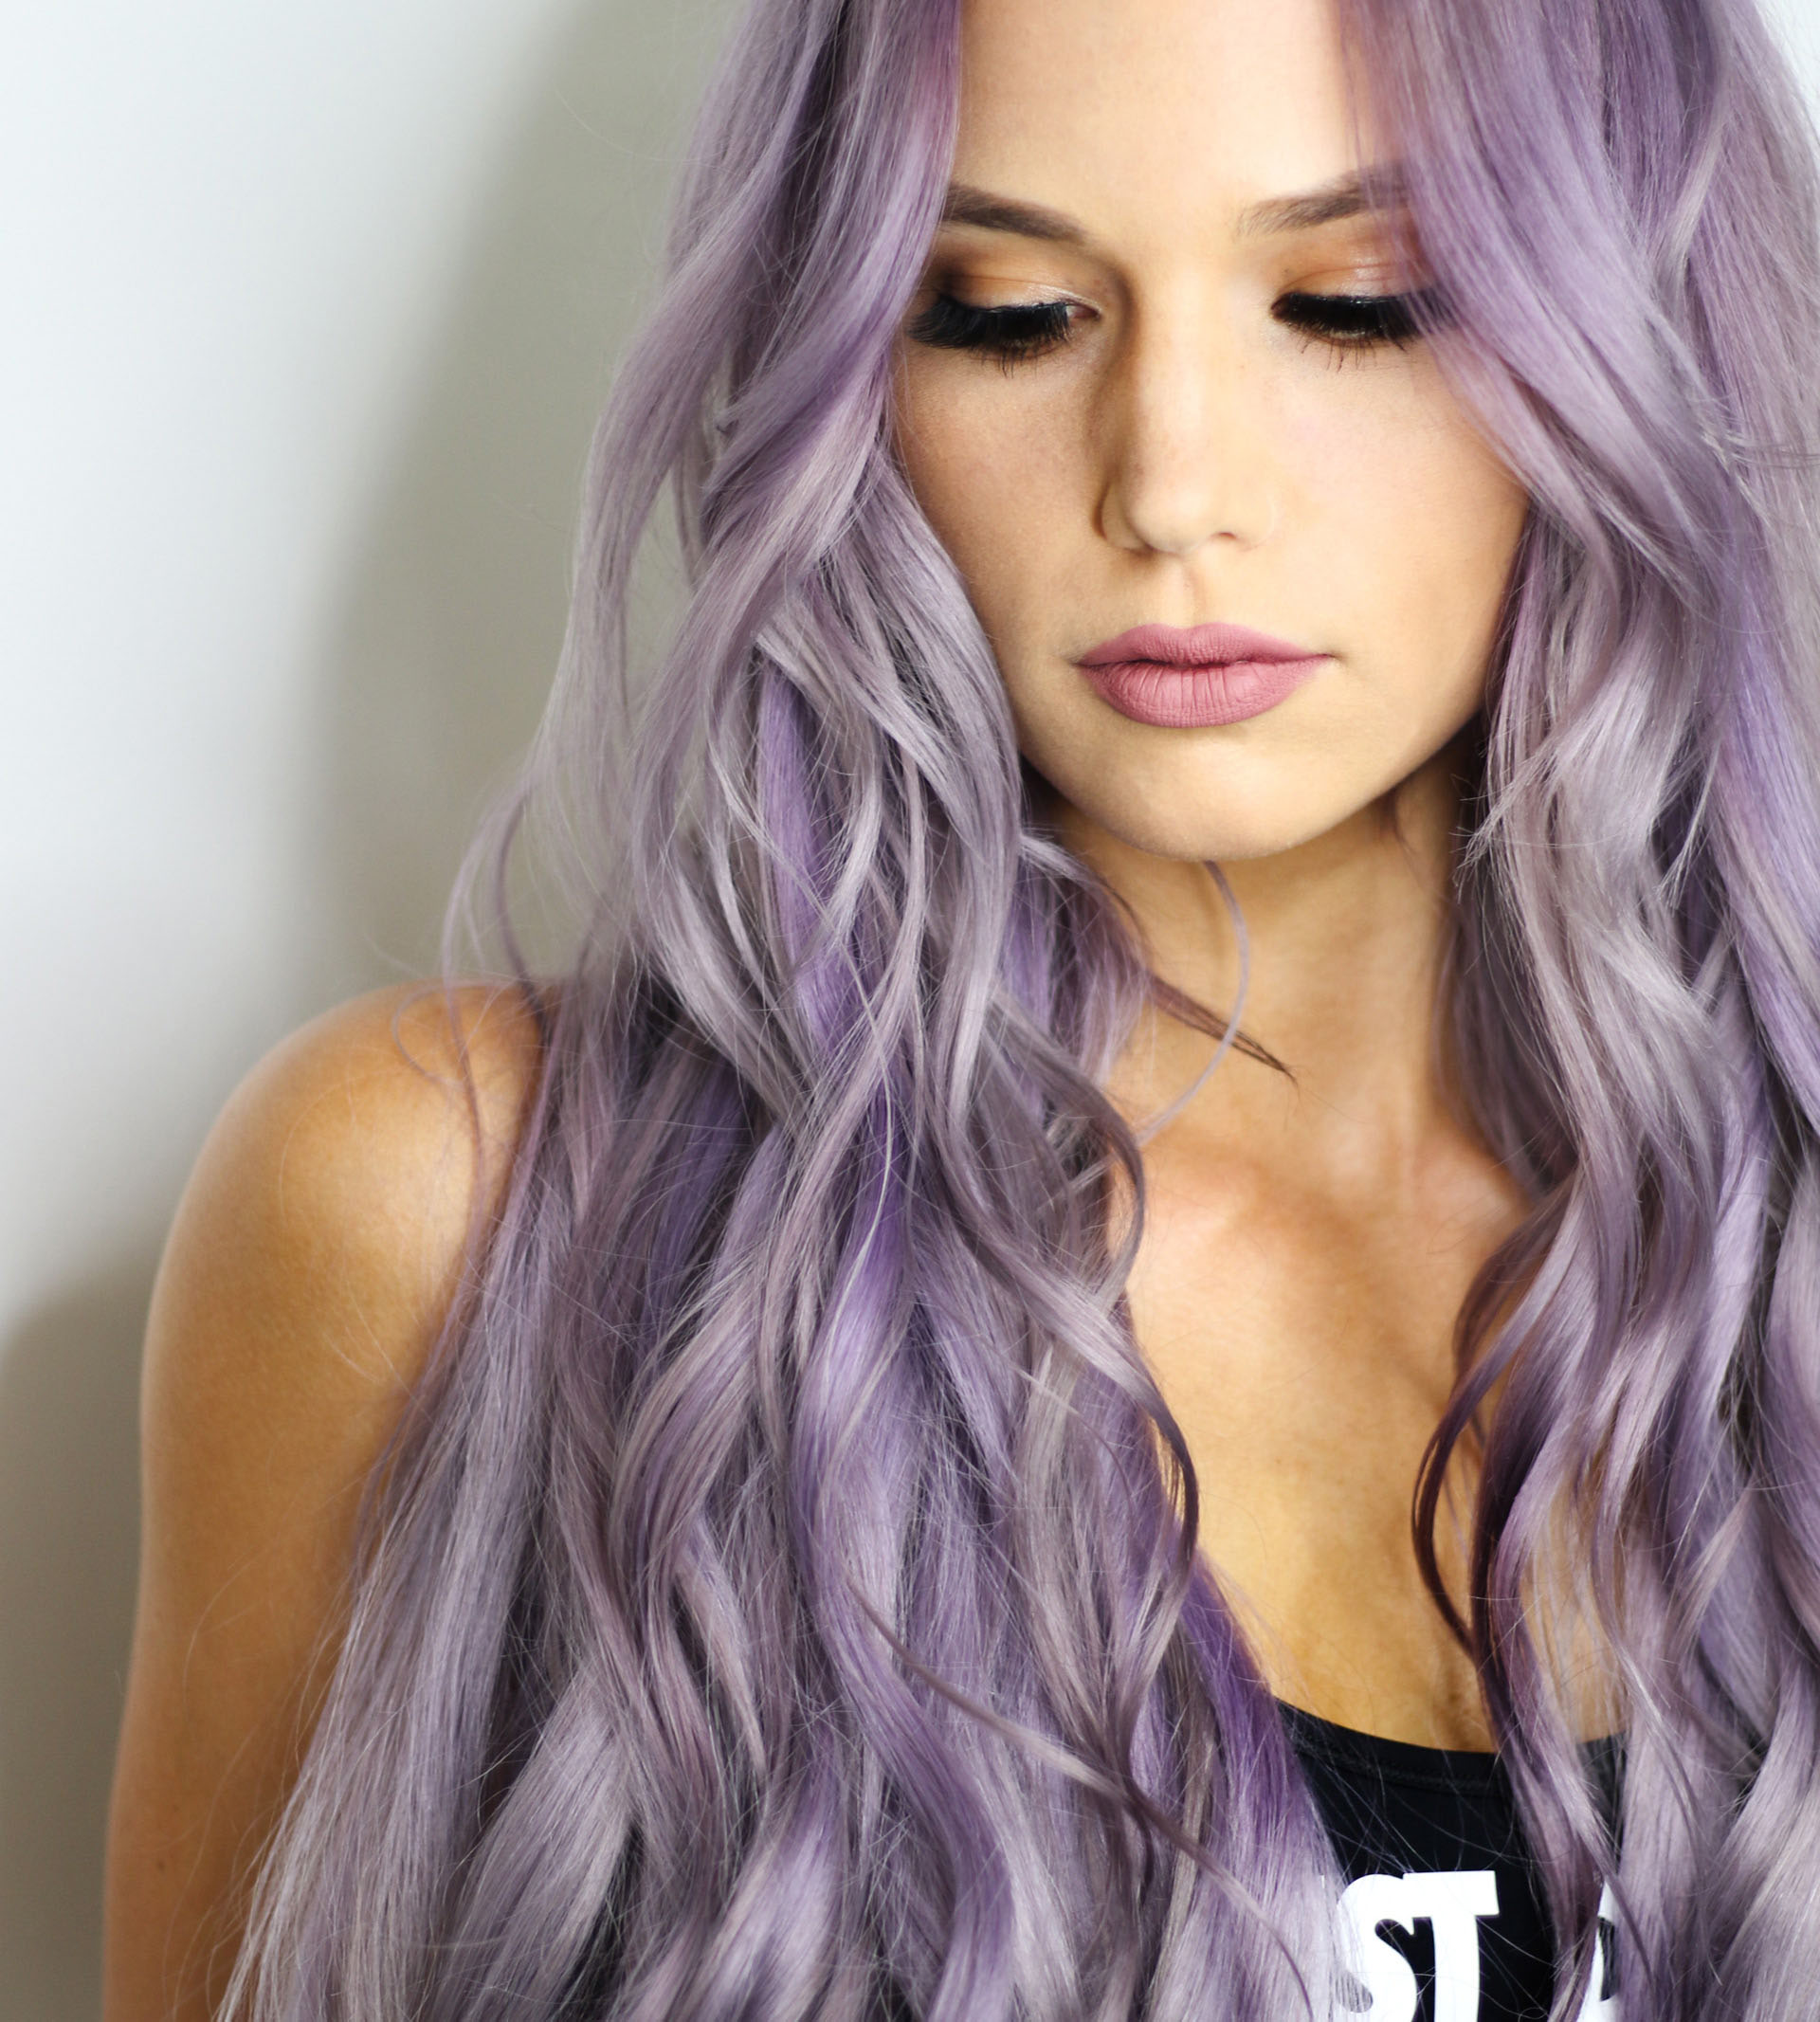 Woman with lavender colored hair